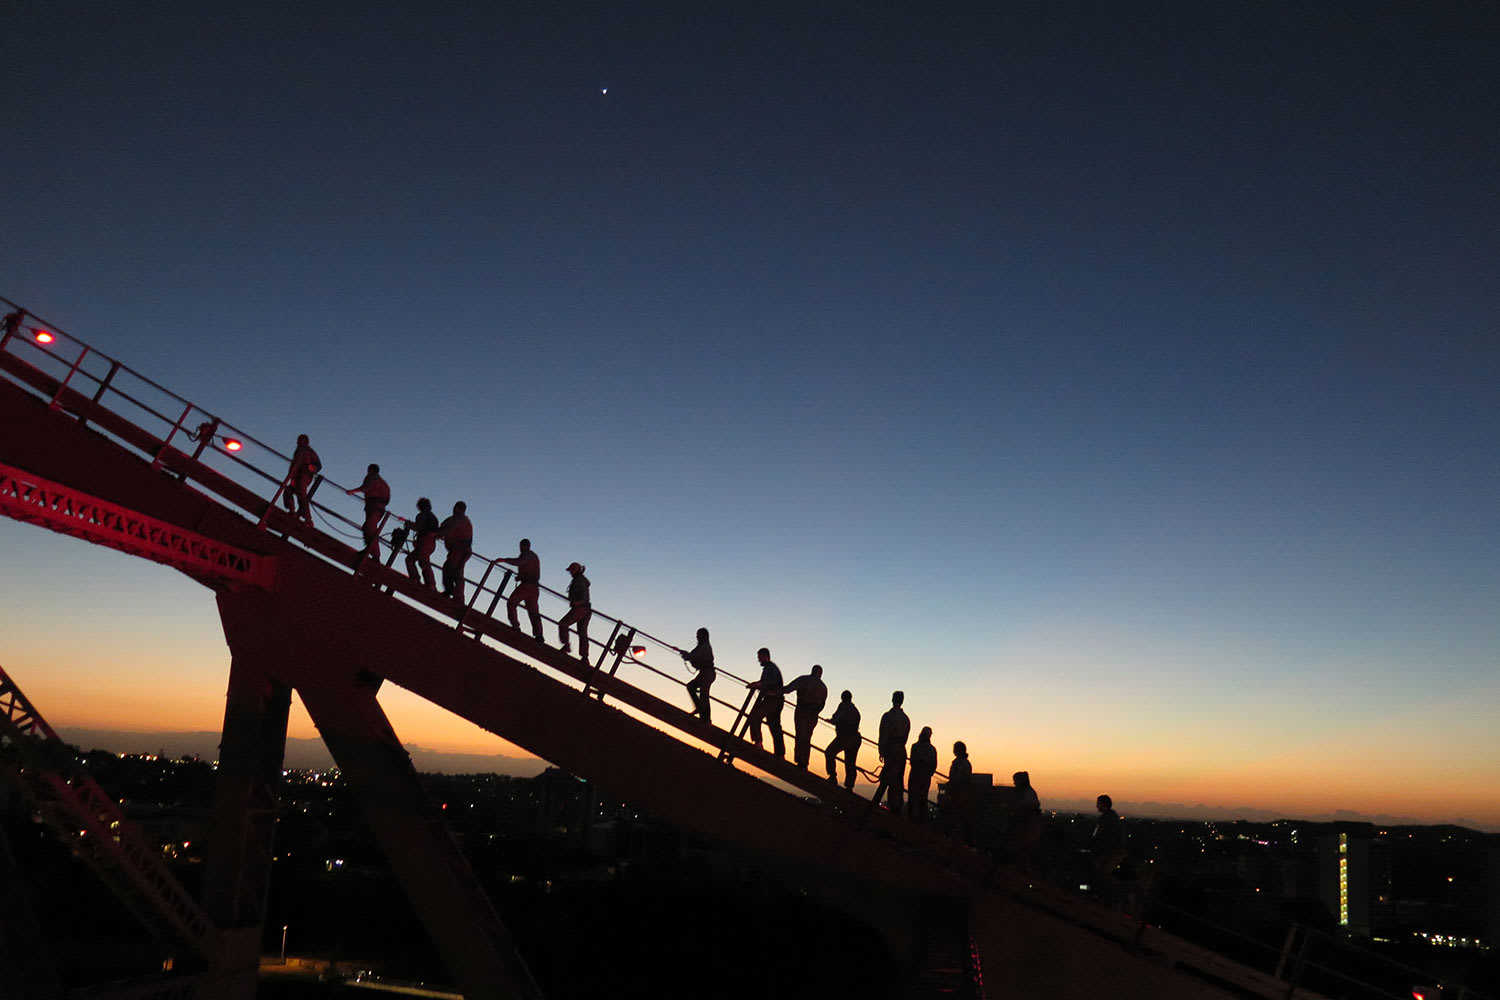 Story Bridge Adventure Climb, Dawn Climb - Brisbane INCLUDES PHOTO